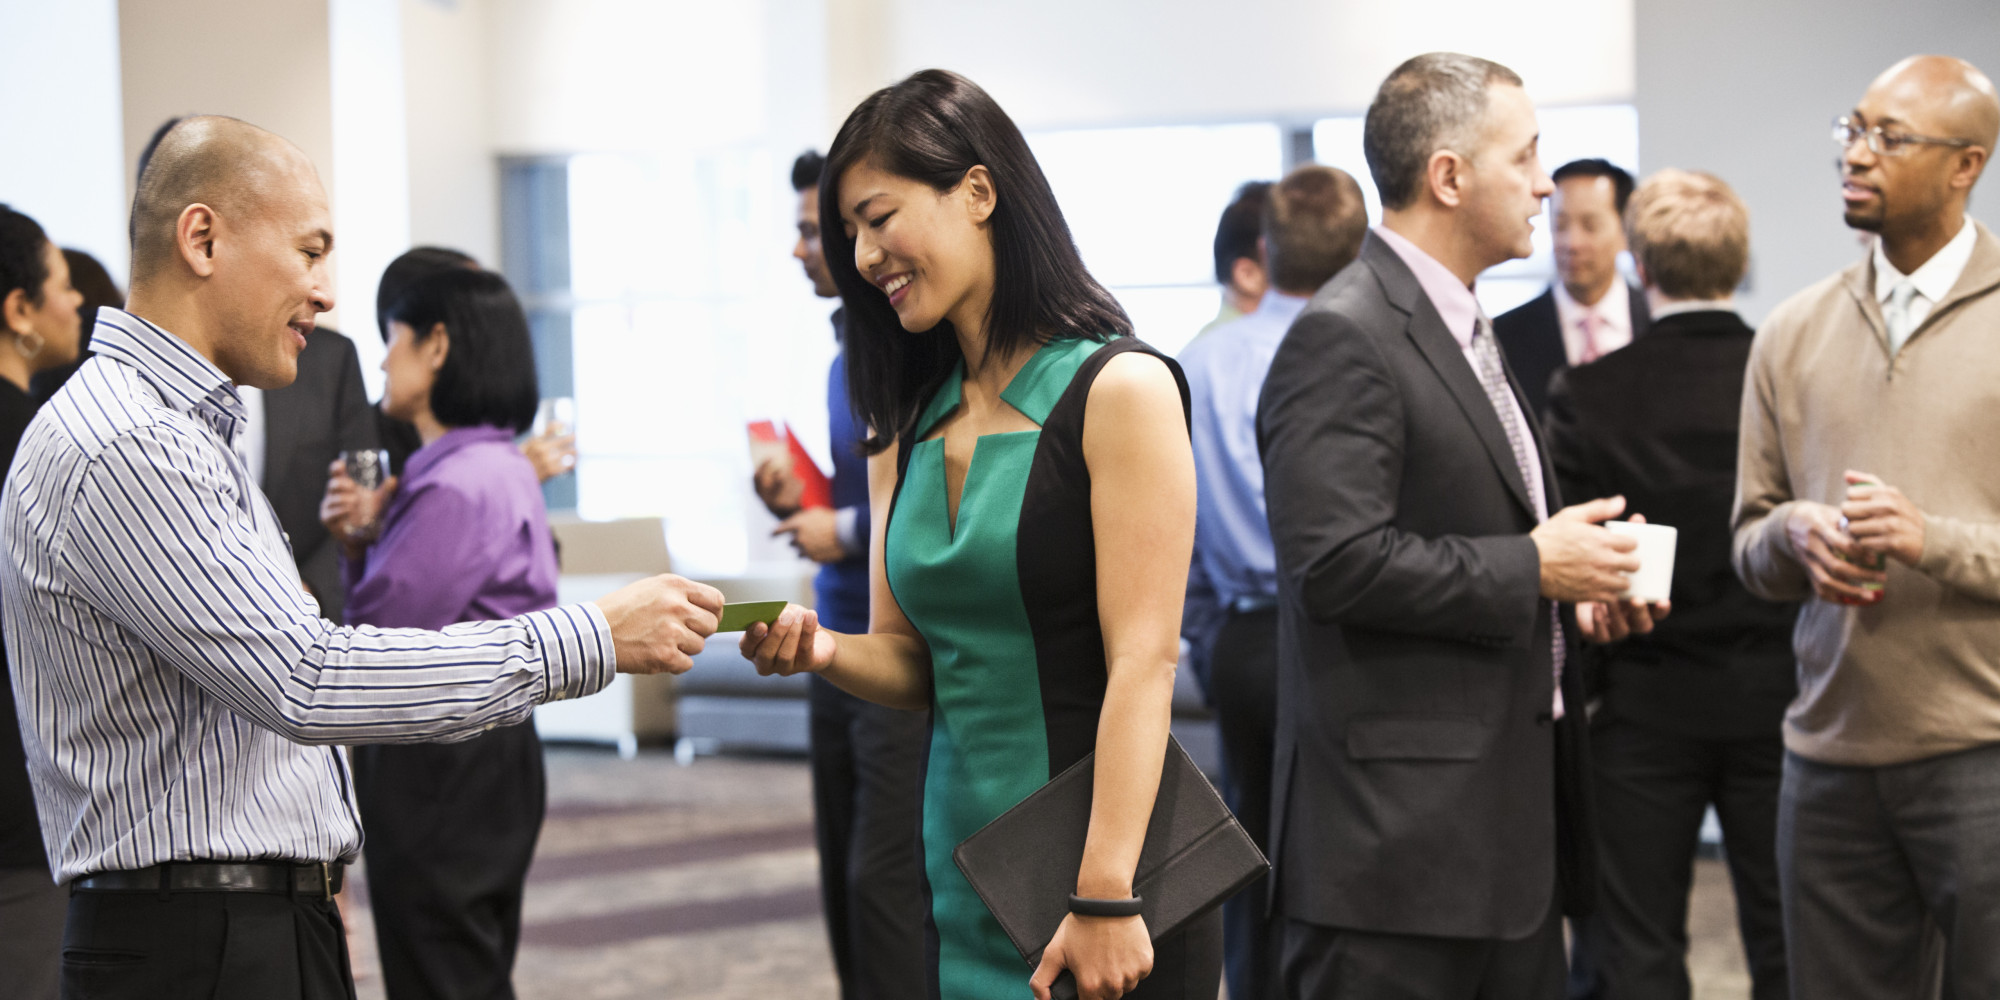 professionals trading business cards at a trade show